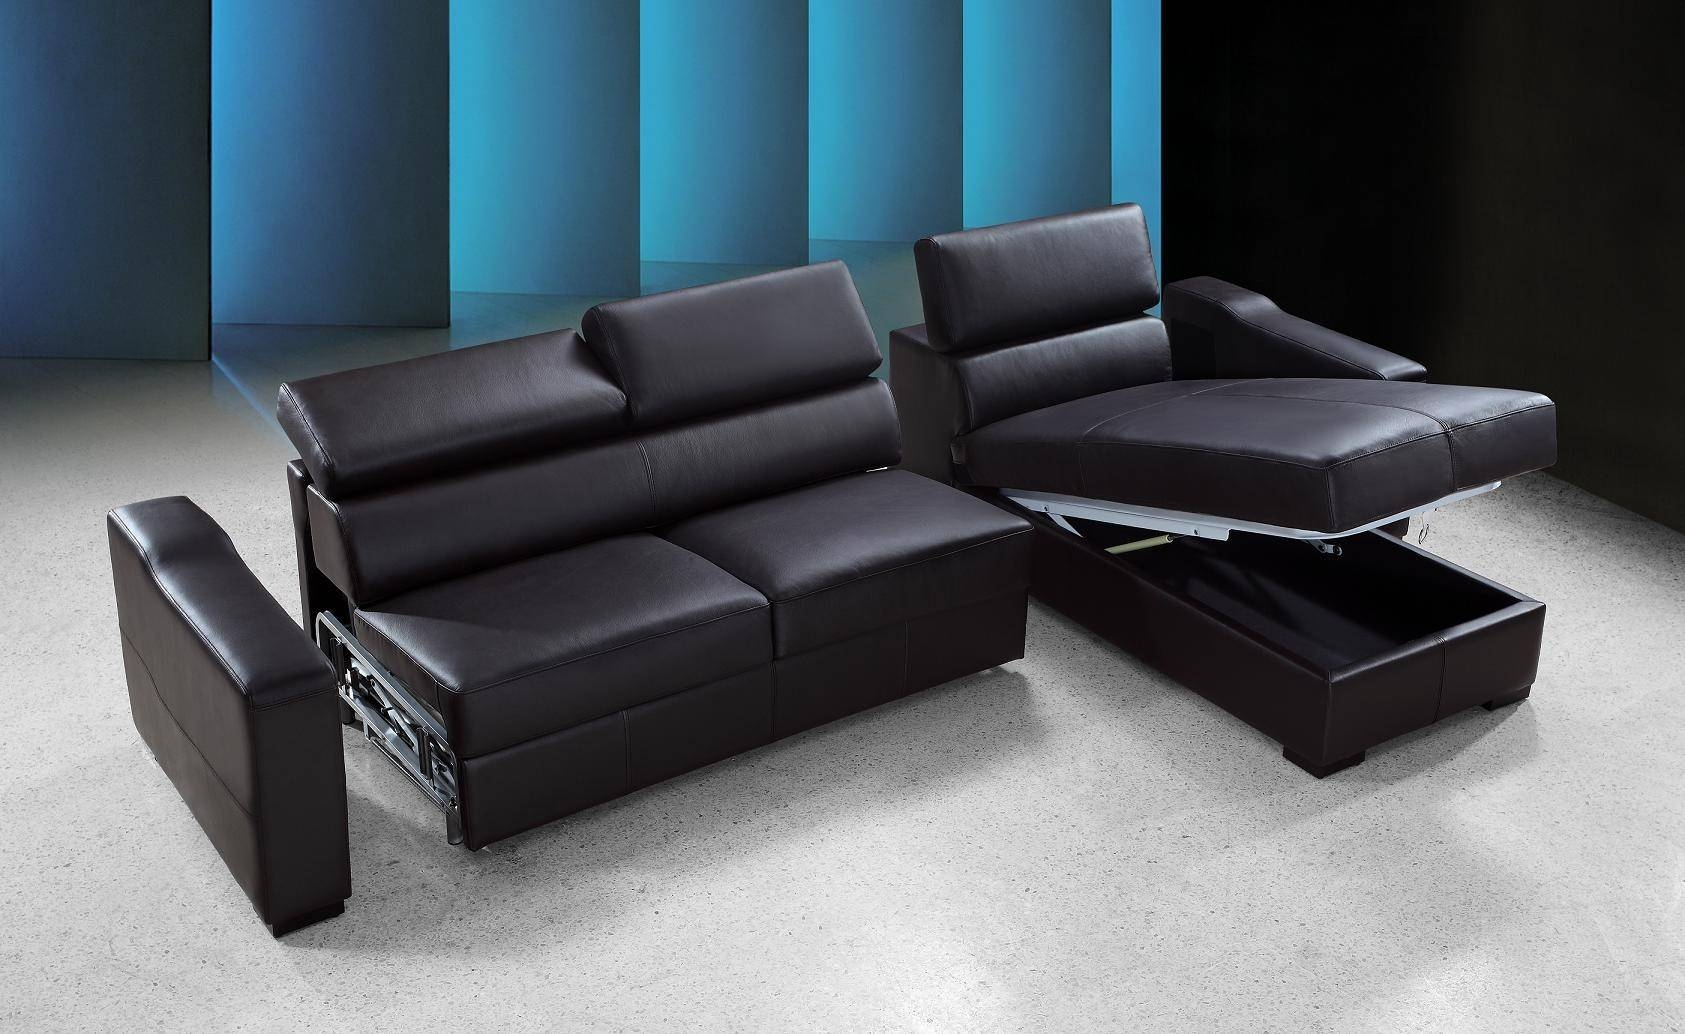 Flip Reversible Espresso Leather Sectional Sofa Bed W/ Storage With Regard To Sectional Sofa Bed With Storage (View 8 of 25)